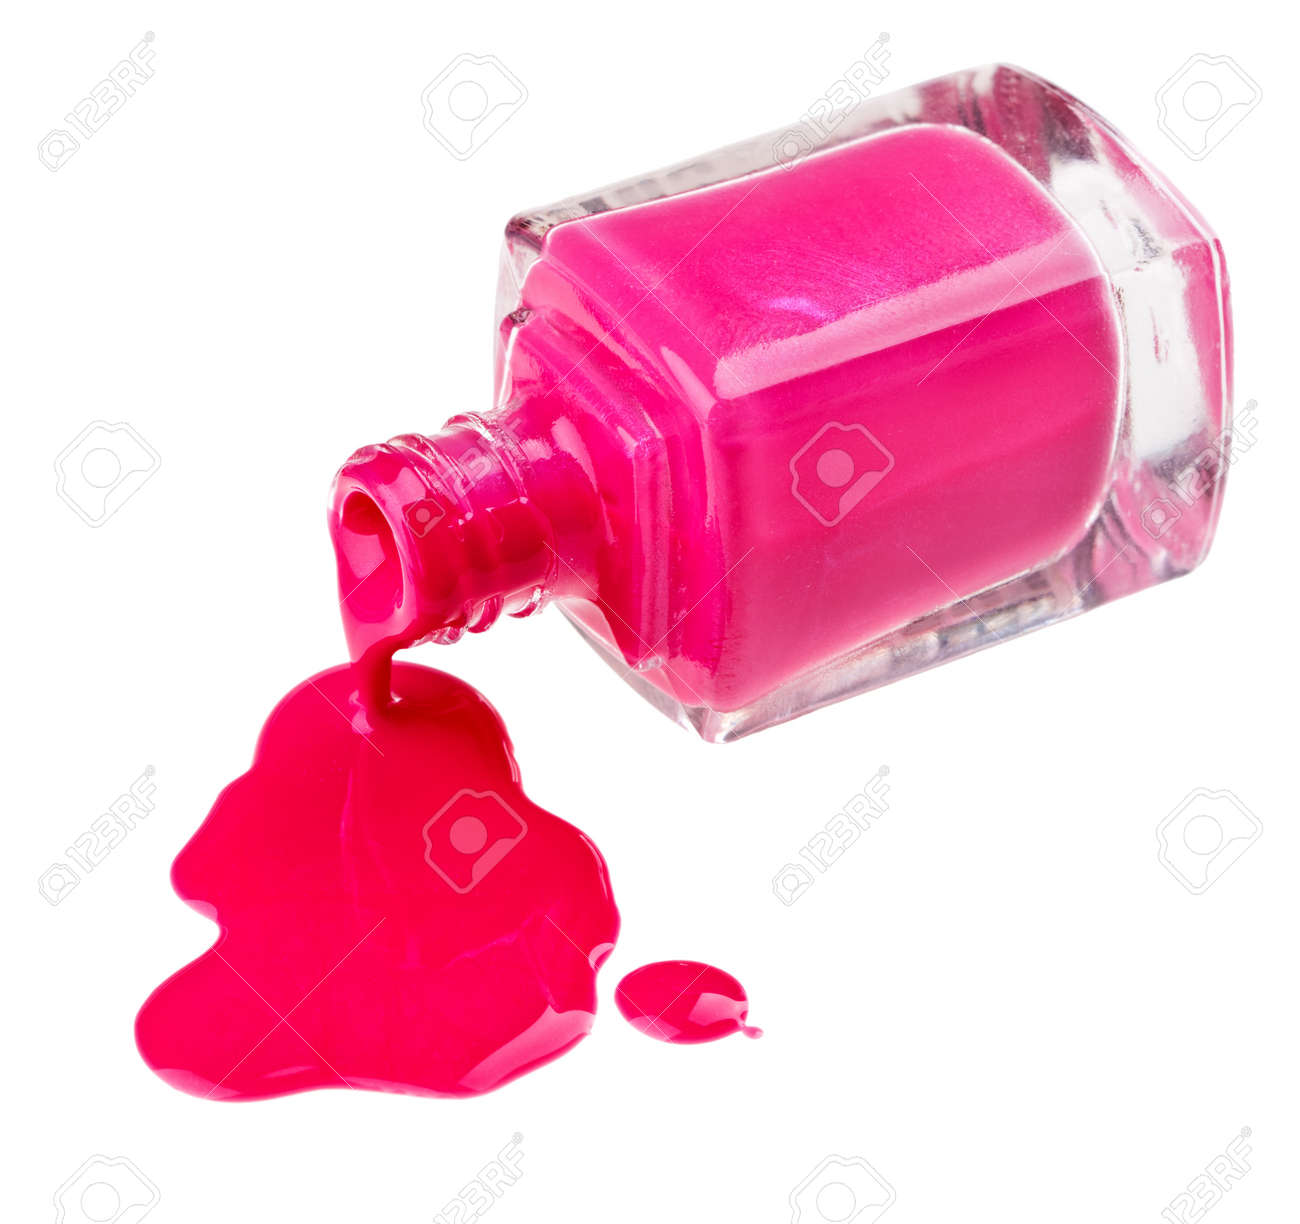 Bottle of pink nail polish with enamel drop samples, isolated on white Stock Photo - 9567814